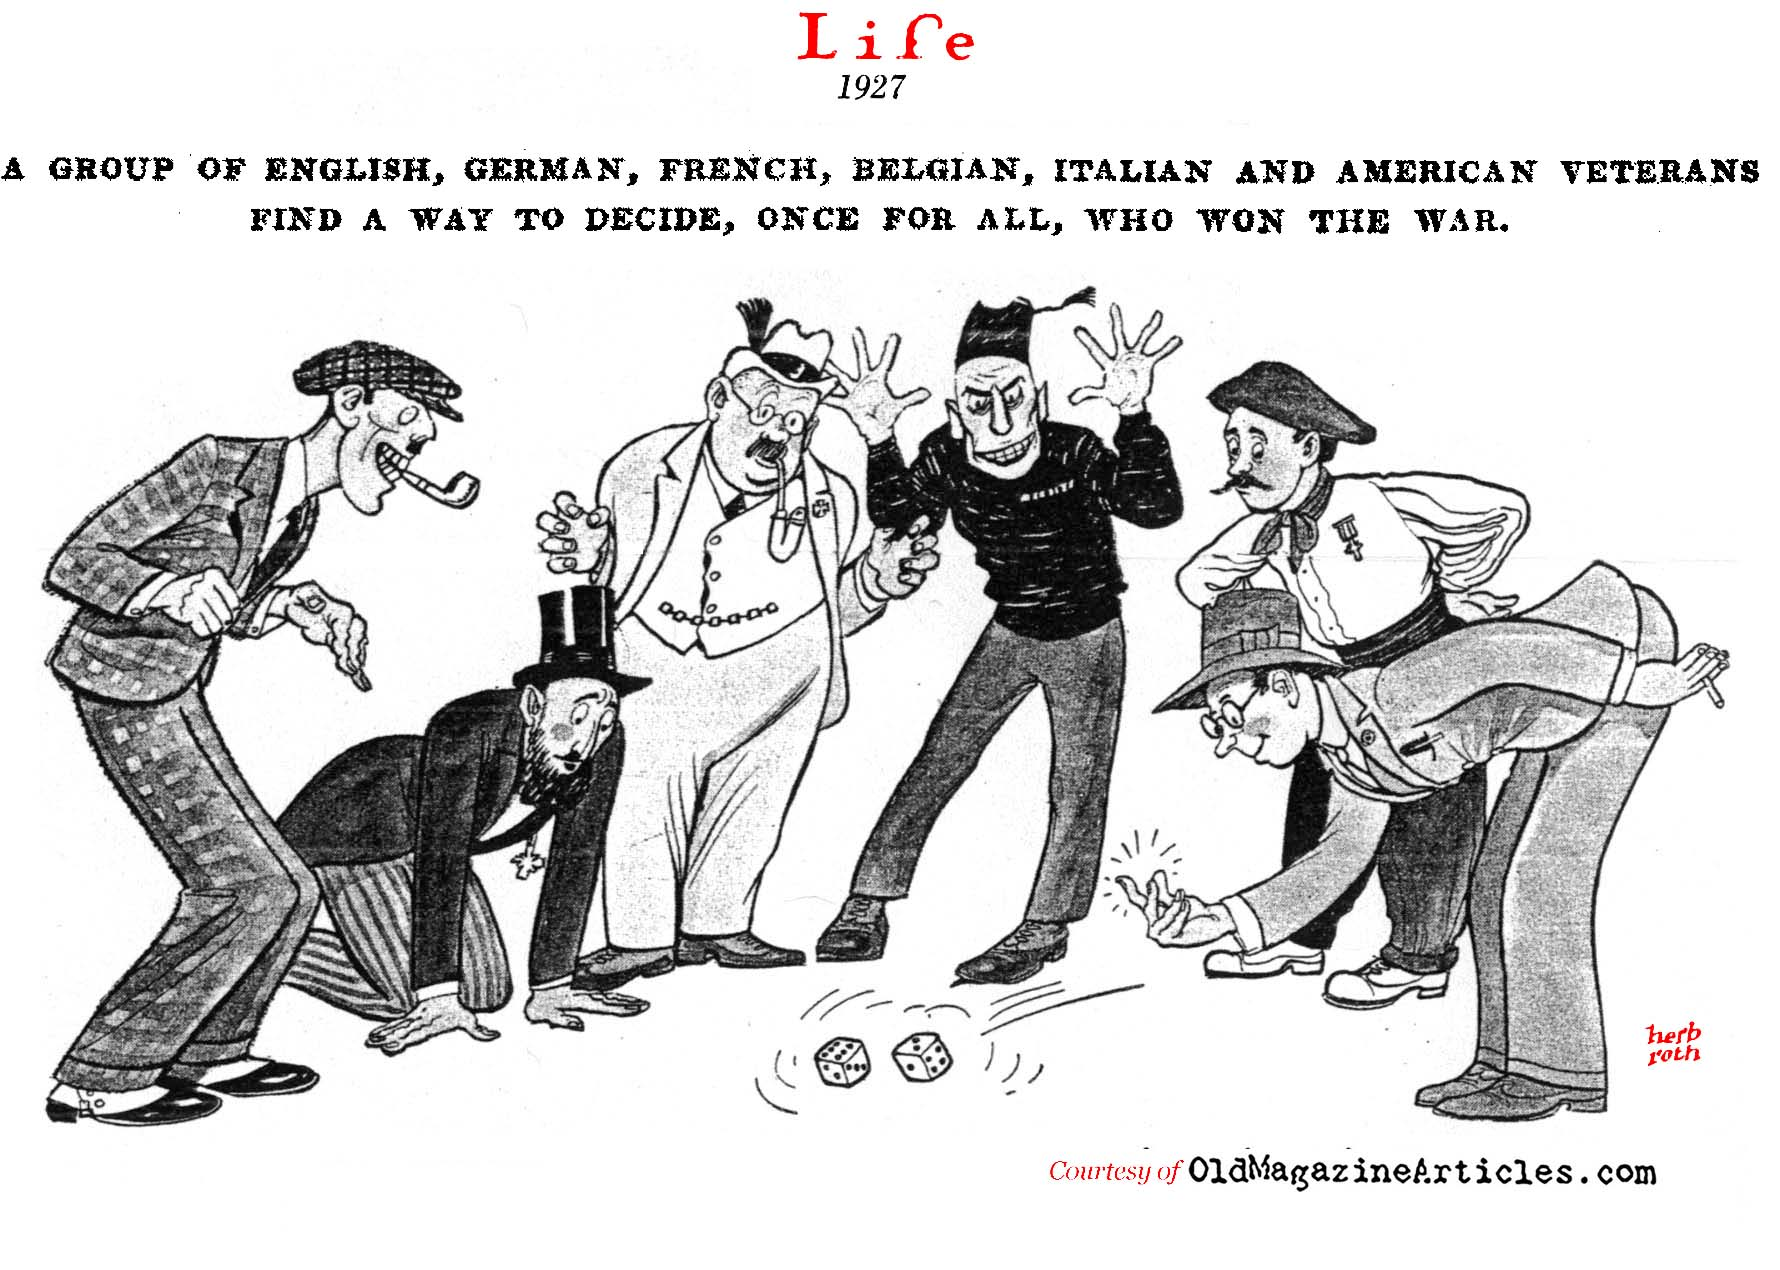 Who Won World War One? (Life Magazine, 1927)